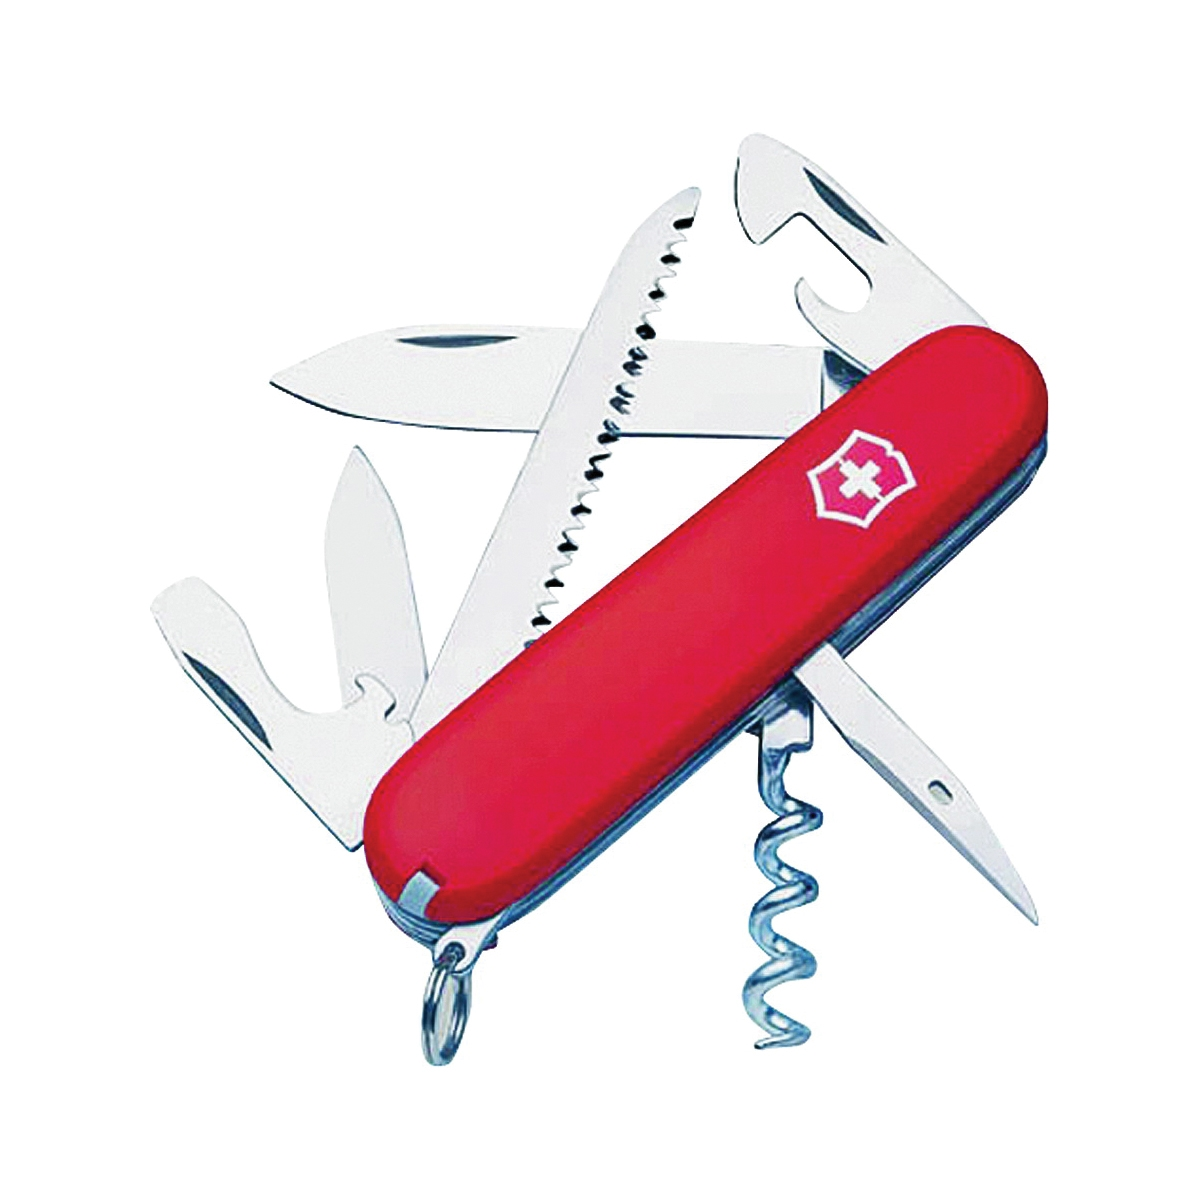 Picture of Victorinox 1.3613.71B1-X1 Pocket Knife, 13 -Function